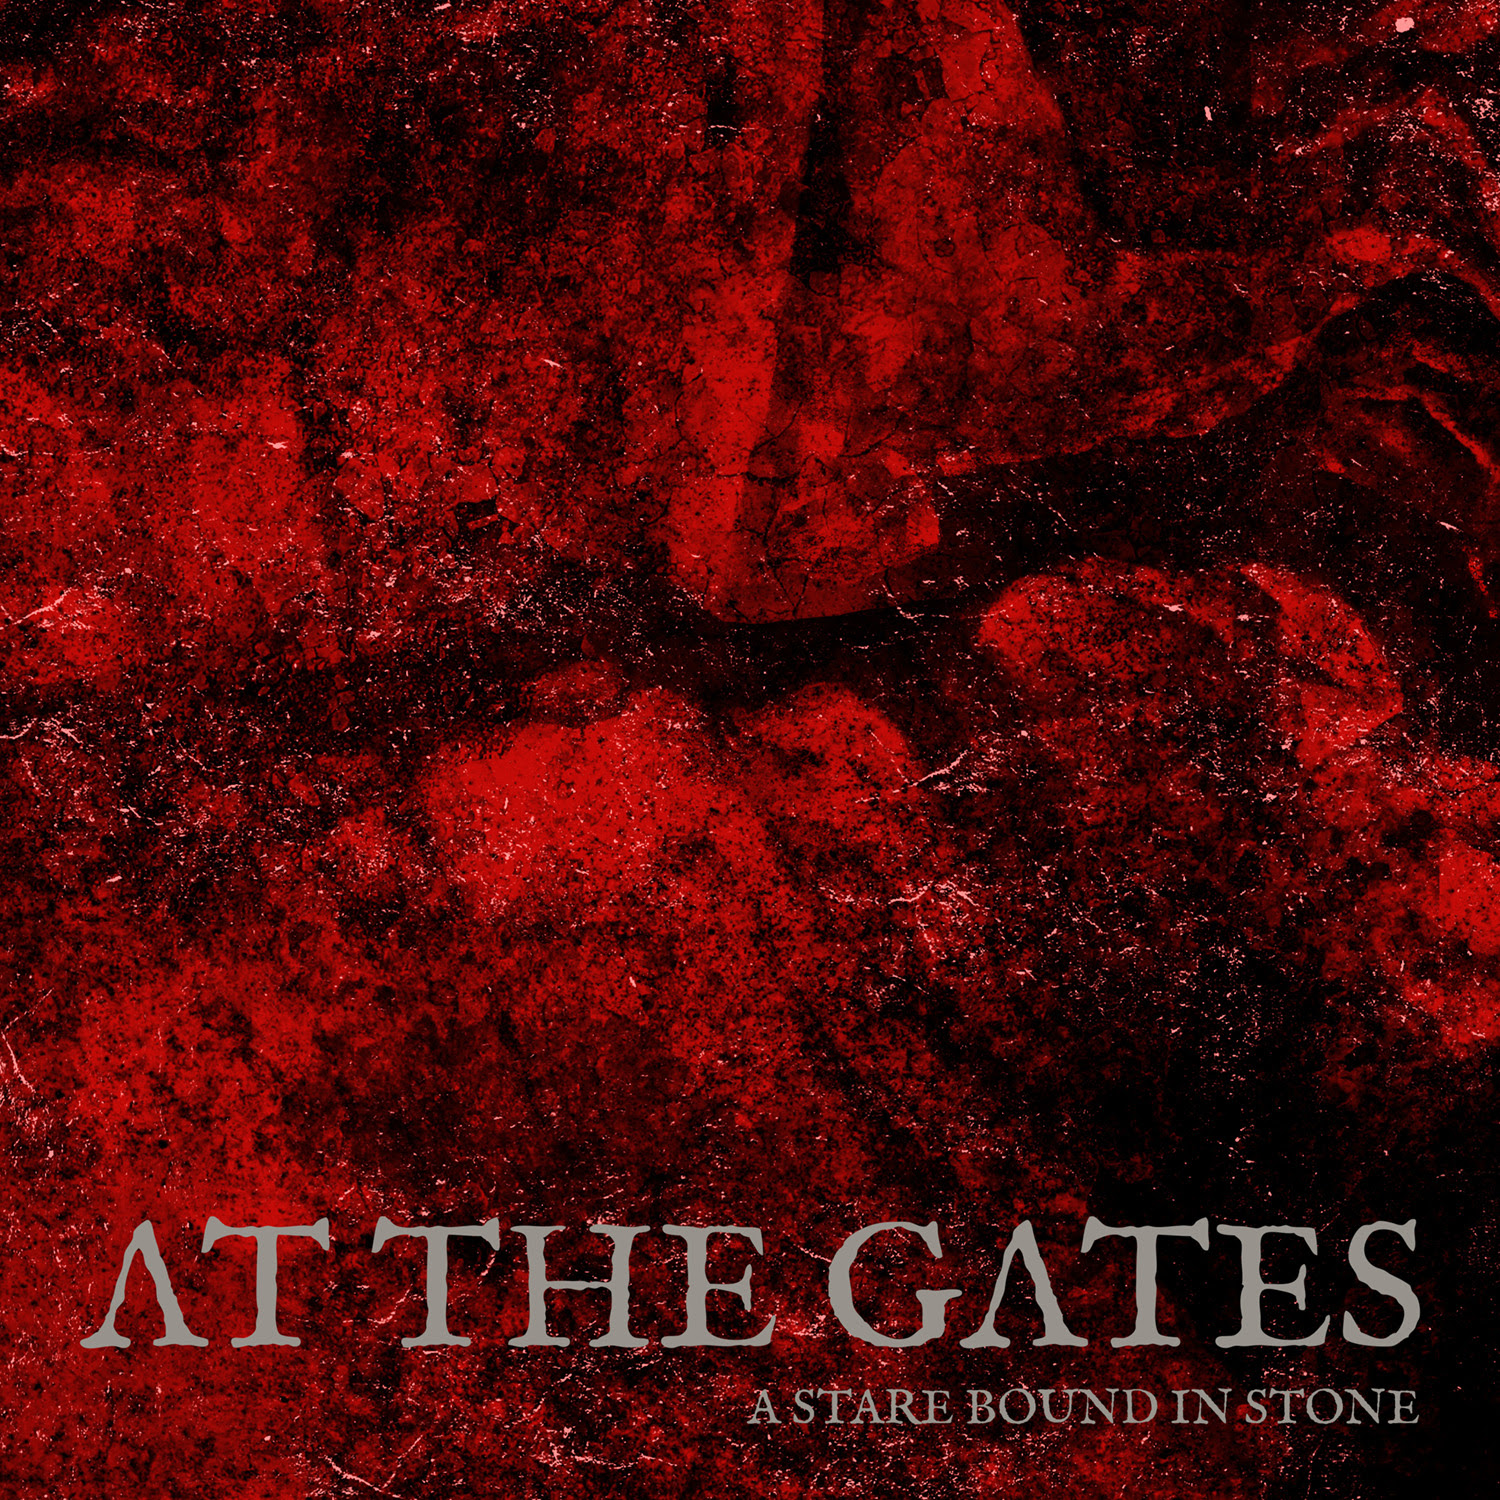 "FOR IMMEDIATE RELEASE MARCH 30, 2018    Swedish melodic Death Metal pioneers  AT THE GATES  continue pre-promoting their much anticipated new studio album ""To Drink From The Night Itself"", out May 18, 2018 via  CENTURY MEDIA RECORDS   by launching its second single and video.  Check out ""A Stare Bound In Stone"" in a video-clip created by Costin Chioreanu / Twilight 13 Media (who was also in charge of the album's artwork concept) here:  https://youtu.be/oIj6ufFSESU    AT THE GATES  frontman Tomas Lindberg comments on the track as follows: "" For the second single release of the album we wanted this menacing stormer, fast aggressive verses, heavy chorus and an evil mantra of an ending. This, for me, depicts the desperate, urgent mood of the record. I think it could be one of the most aggressive songs we have ever written. This album is so diverse, and includes so much different elements that it is hard to boil down those essences to just one song. This song has a lot of them though, more to come soon. For the video-shoot we wanted to work with Costin on this one, as he is an essential part of this record. We felt that he knew exactly what kind of emotions we wanted to get across, and how to capture them artistically. I see this video as a brilliant complement to the song. Enjoy! ""  Previously,  AT THE GATES  have launched a video for the album's title track ""To Drink From The Night Itself"" in a video directed by Patric Ullaeus / Revolver.se here:  https://youtu.be/dhru7gT0cIE   An interesting making-of feature for the ""To Drink From The Night Itself"" video-clip with band-interview snapshots can now also be seen here:  https://youtu.be/9gaQg2eWQLY    Earlier this month  AT THE GATES  performed a first weekend of shows in order to introduce their current line-up and the group also debuted the upcoming album's title-track as part of their comprehensive setlist. Check out a short documentary video about the special first club-show in Osnabrück, which was actually performed under the secretive name THE BURNING DARKNESS:  https://www.youtube.com/watch?v=KXtnojtU-1E   Next to the standard jewelcase CD, the digital download and the LP version (various options detailed below), ""To Drink From The Night Itself"", which was produced with Russ Russell (Napalm Death, The Haunted, Dimmu Borgir, etc.) at Parlour Studios in the UK, will also be available in Europe as a limited edition mediabook 2CD (with a bonus-disc of 5 additional tracks, expanded booklet and 3 stickers) and as a strictly limited and numbered LP boxset.  The LP format comes as 180 gram vinyl in gatefold packaging with an eight page LP booklet and an art print in the following different versions, colors and limited quantities:  Black LP – Unlimited Smokey gray LP via CM US  – 300x copies Sea glass green LP via CM US  – 300x copies Red LP via CM US – 600x copies Golden LP via Indie Retail Stores USA – 300x copies Clear LP via Bengans Sweden – 400x copies Silver LP via CM EU Onlineshop – 200x copies Picture LP via CM Distro EU – 500x copies White LP via Nuclear Blast Webshop – 300x copies Blue LP via EMP – 300x copies  The album's LP boxset is strictly limited to 2000 numbered copies and will include a special triple Gatefold version with alternate cover artwork, LP booklet, 4 art prints, a bonus LP with the 5 additional tracks and etching on B-side, a large poster, a large patch, a metal pin, a hand-signed card, a set of 3 stickers as well as the album's CD and bonus-disc on plastic sleeves.  The main album's track listing reads as follows:   AT THE GATES - ""To Drink From The Night Itself"":  1. Der Widerstand 2. To Drink From The Night Itself 3. A Stare Bound In Stone 4. Palace Of Lepers 5. Daggers Of Black Haze 6. The Chasm 7. In Nameless Sleep 8. The Colours Of The Beast 9. A Labyrinth Of Tombs 10. Seas Of Starvation 11. In Death They Shall Burn 12. The Mirror Black  The previously mentioned additional tracks on the 2CD and LP-Boxset editions of the album include alternate versions of album songs featuring appearances by the following guest vocalists: Rob Miller (Amebix, Tau Cross), Per Boder (God Macabre) and Mikael Nox Pettersson (Craft). The exact track-listing reads as follows.   1. Daggers Of Black Haze (feat. Rob Miller) 2. The Chasm (feat. Per Boder)  3. A Labyrinth Of Tombs (feat. Mikael Nox Pettersson) 4. The Chasm (demo version) 5. The Mirror Black (feat. Rob Miller)     You can now pre-order ""To Drink From The Night Itself"" in its various formats here:   https://AtTheGates.lnk.to/ToDrinkFromTheNightItself     In related news,  AT THE GATES  are also part of the Flexi 7"" Series by Decibel Magazine with a special new rendition of ""Raped By The Light Of Christ (2018)"" as part of their next monthly issue. You can stream the track online here:  https://www.decibelmagazine.com/2018/03/23/hear-exclusive-new-at-the-gates-recording-raped-by-the-light-of-christ-2018-via-decibel-flexi-series/   On the live-front,  AT THE GATES  are headed to the U.S. to perform at Decibel's Metal & Beer Fest this weekend and have additionally just announced two shows in Greece (supported by Memoriam) as part of their live-campaign for the ""To Drink From The Night Itself"" release. A list of all upcoming shows announced so far is as follows:    AT THE GATES TOUR DATES 2018  3/31  Philadelphia, PA - Decibel Metal & Beer Fest 5/2    Hong Kong, CN - TTN 5/3    Bangkok, TH - Hollywood Awards 5/5    Manila, PH - Pulp Summer Slam  5/6    Singapore, SG - Scape 5/29  Tokyo, JP - O-East 5/30  Nagoya, JP - Electric Lady Land 5/31  Osaka, JP - Umeda Trad  6/21  Halden, NO - Tons Of Rock Festival 6/22  Copenhagen, DK - Copenhell Festival 6/23  Dessel, BE - Graspop Metal Meeting  6/24  Clisson, FR - Hellfest  6/29  Verona, IT - Rock The Castle Festival 6/30  Helsinki, FI - Tuska  7/12  Viveiro, ES - Resurrection Fest  7/14  Gävle, SE - Gefle Metal Fest 7/28  Essen, DE - Nord Open Air 8/4    Saint-Maurice-De-Gourdans, FR - Sylak Open Air 8/10  Jaromer, CR - Brutal Assault Festival 8/12  Walton On Trent/Derbyshire, UK - Bloodstock Open Air 8/16  Dinkelsbühl, DE - Summer Breeze Open Air  9/15  Guadalajara, MX - C3 Stage  9/16  Mexico City, MX - Circo Volador  9/18  San Jose, CR - Pepers Club  9/19  San Salvador, SV - Cifco  9/20  Guatemala City, GT - Rock Ol Vuh  9/22  Bogota, CO - TBC 9/25  Buenos Aires, AR - Uniclub  9/27  Temuco, CL - Puerto Madero/ Casas Viejas  9/28  Santiago, CL - Blondie  9/30  Sao Paulo, BR - Carioca Club  11/30 Athens, GR - Piraeus 117 Academy 12/1   Thessaloniki, GR - Principal Club Theater   Further details about ""To Drink From The Night Itself"" will be following soon…   AT THE GATES line-up:  Tomas Lindberg – Vocals  Jonas Björler – Bass Martin Larsson – Guitar Jonas Stålhammar – Guitar Adrian Erlandsson – Drums   AT THE GATES online:   http://www.atthegates.se    https://www.facebook.com/AtTheGatesOfficial   https://twitter.com/AtthegatesGBG   http://www.youtube.com/atthegatesofficial    Century Media online:   http://www.centurymedia.com      http://www.youtube.com/centurymedia      http://www.twitter.com/centurymedia    http://www.facebook.com/centurymedia"